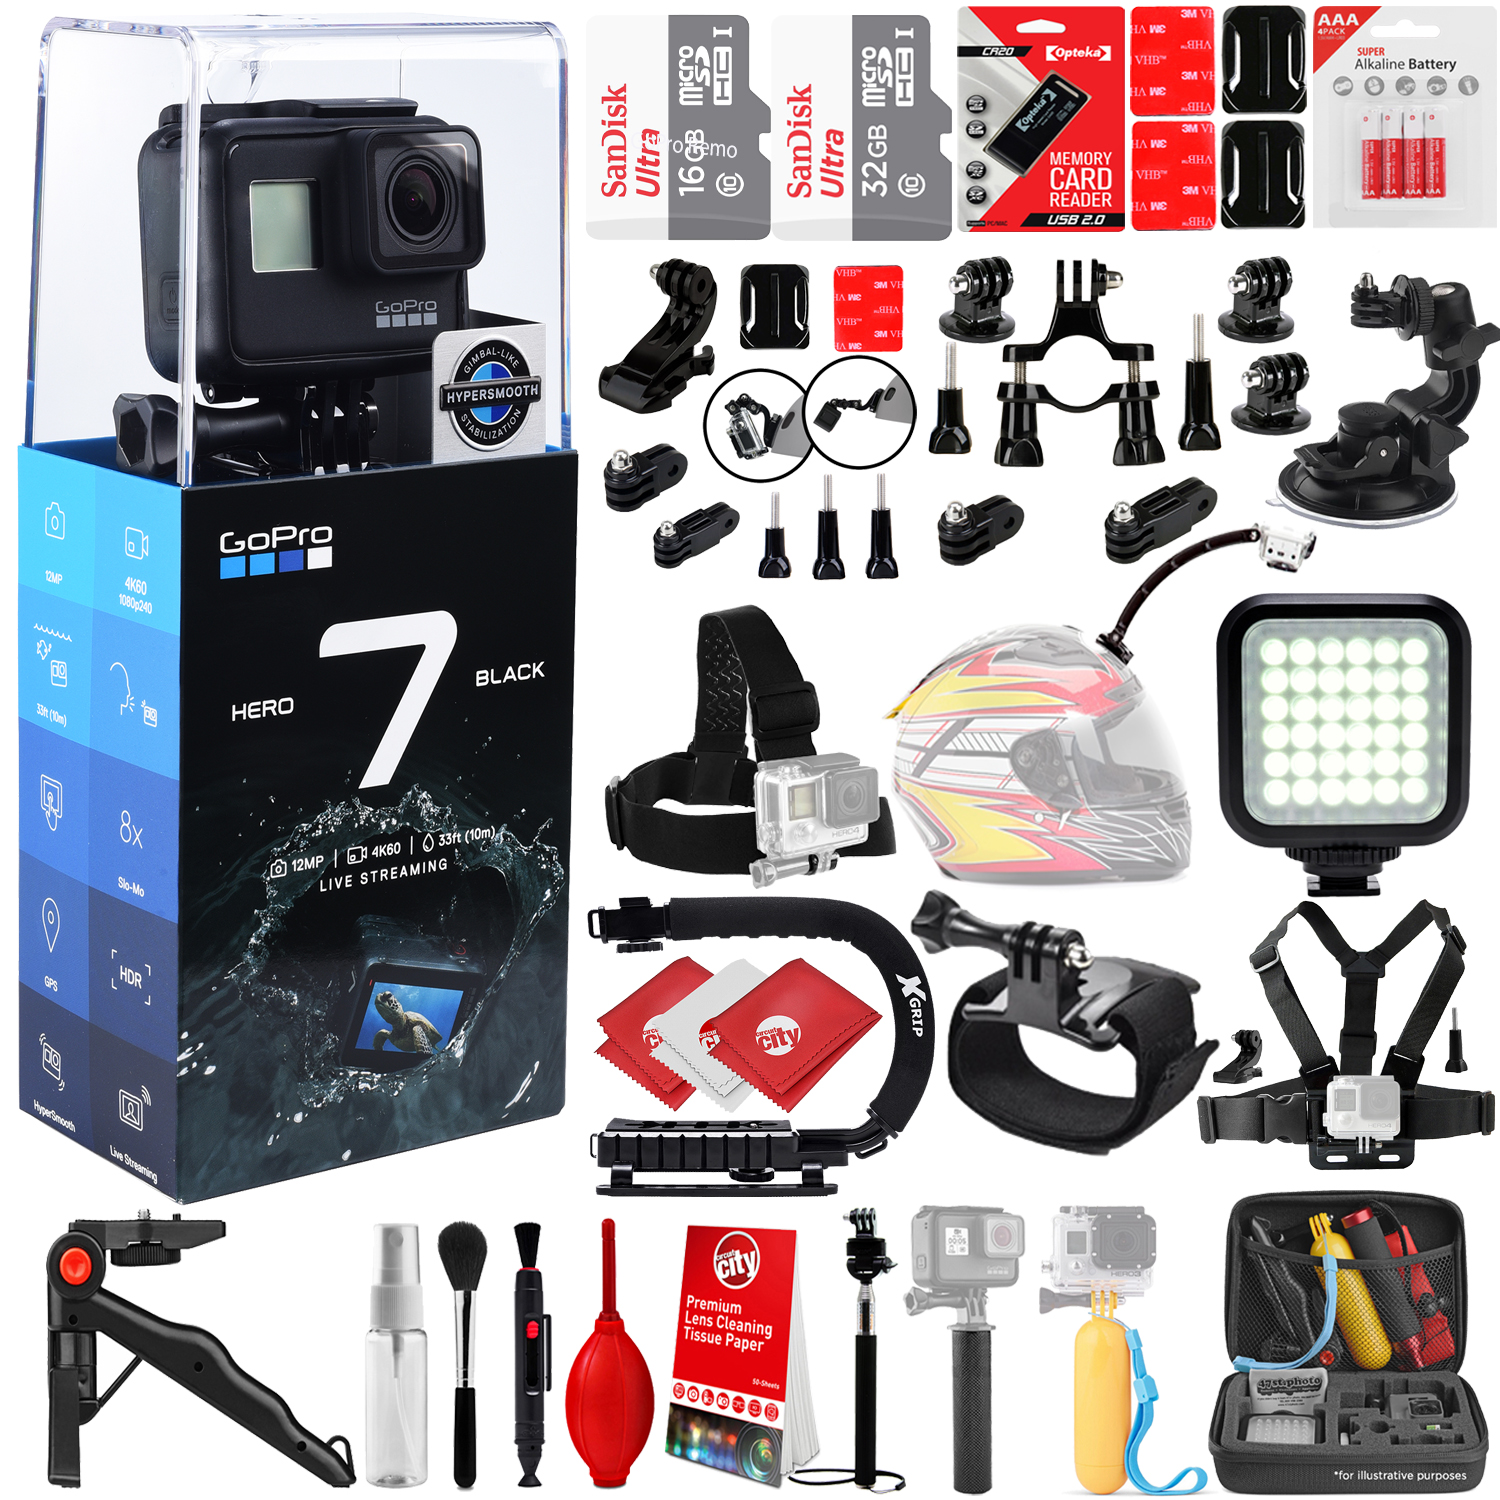 GoPro HERO7 Black 4K 12MP Digital Camcorder w/ 48GB - 40PC Sports Action Bundle (2x 16GB Micro SD cards, Suction Cup Window Mount, High Power LED Light, X-GRIP Stabilizing Handle & More)